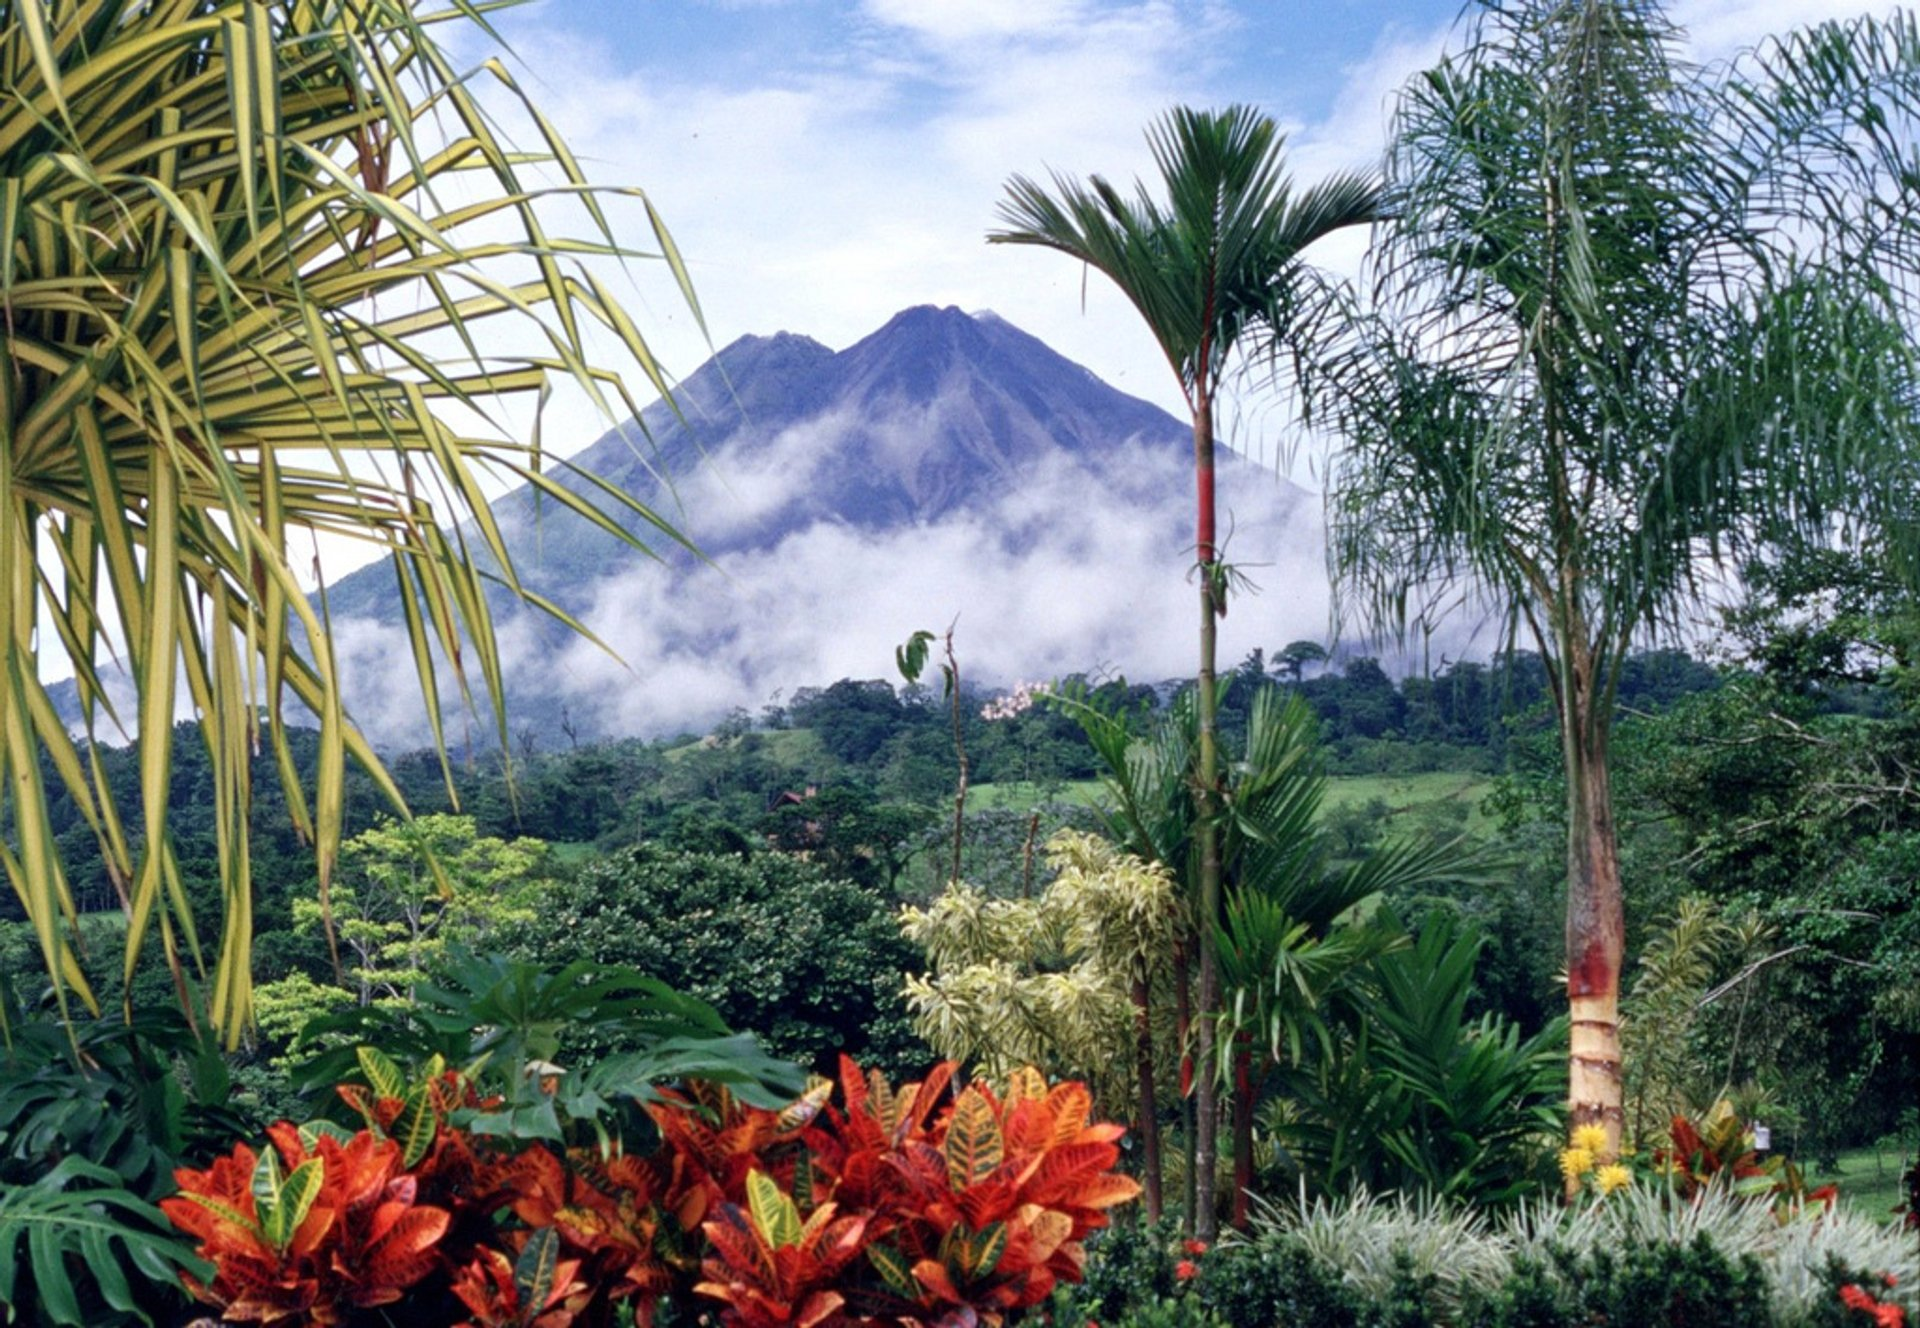 Arenal Volcano in Costa Rica 2019 - Best Time